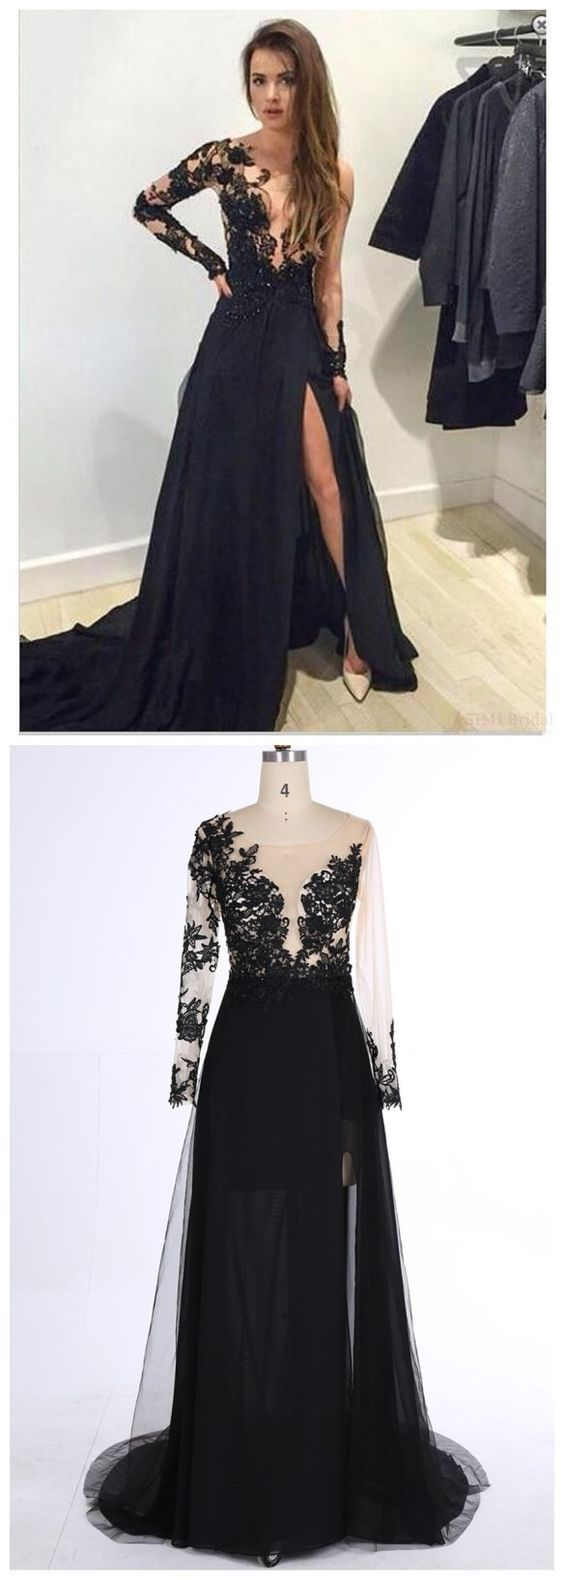 """chloe) """"my dress for prom.. probably won't get asked though!"""":"""